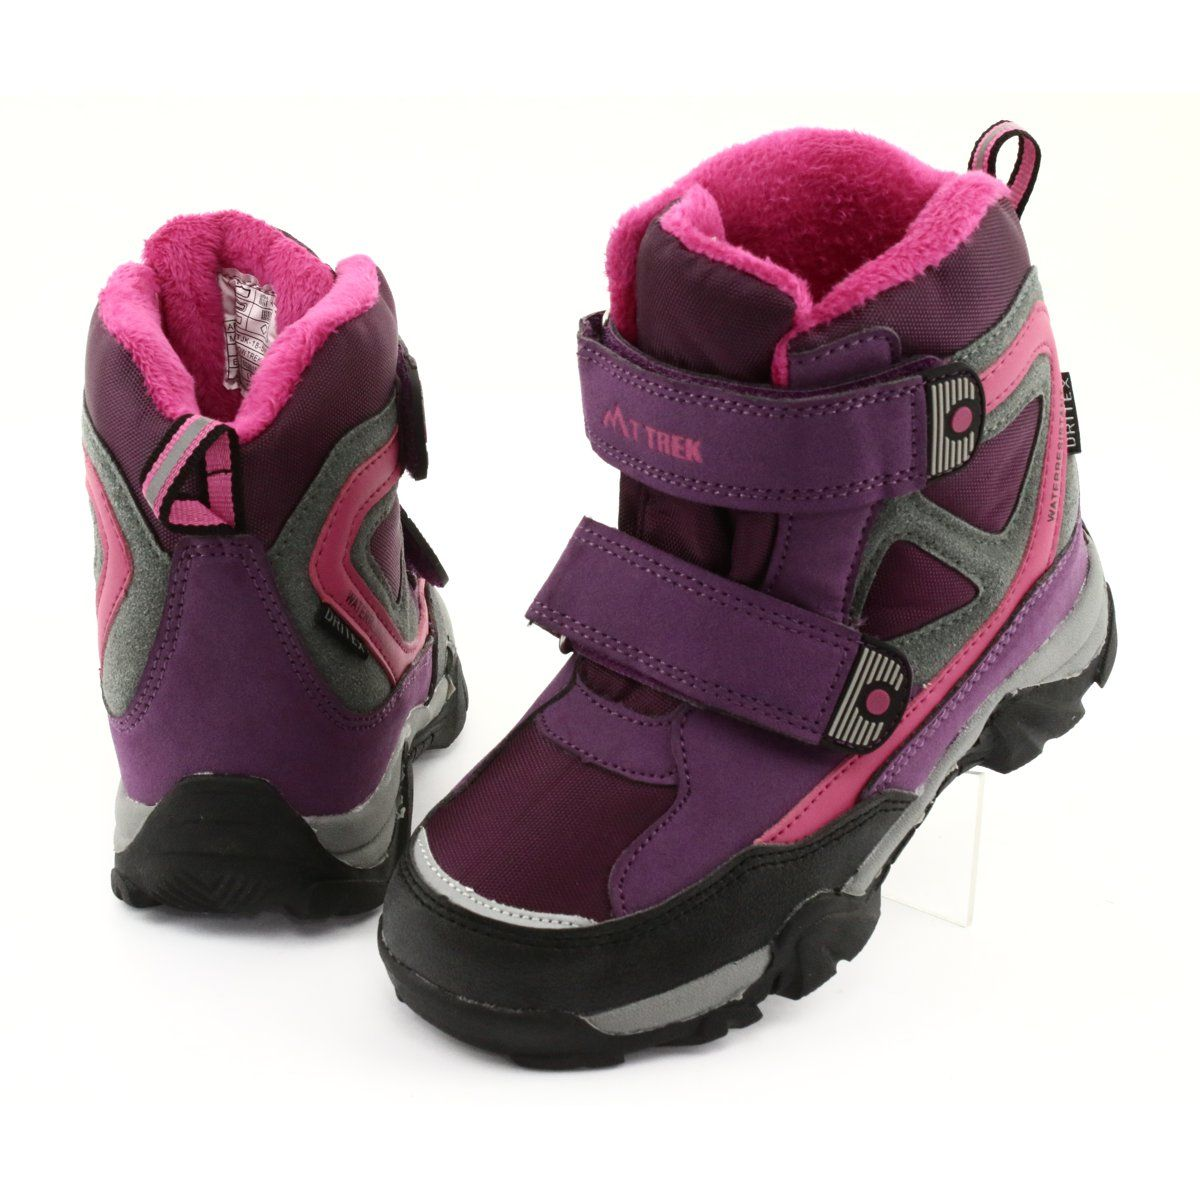 Boots For Children Mttrek Mttrek Velcro Boots With A Membrane 18 501 011 Boots Childrens Boots Kid Shoes